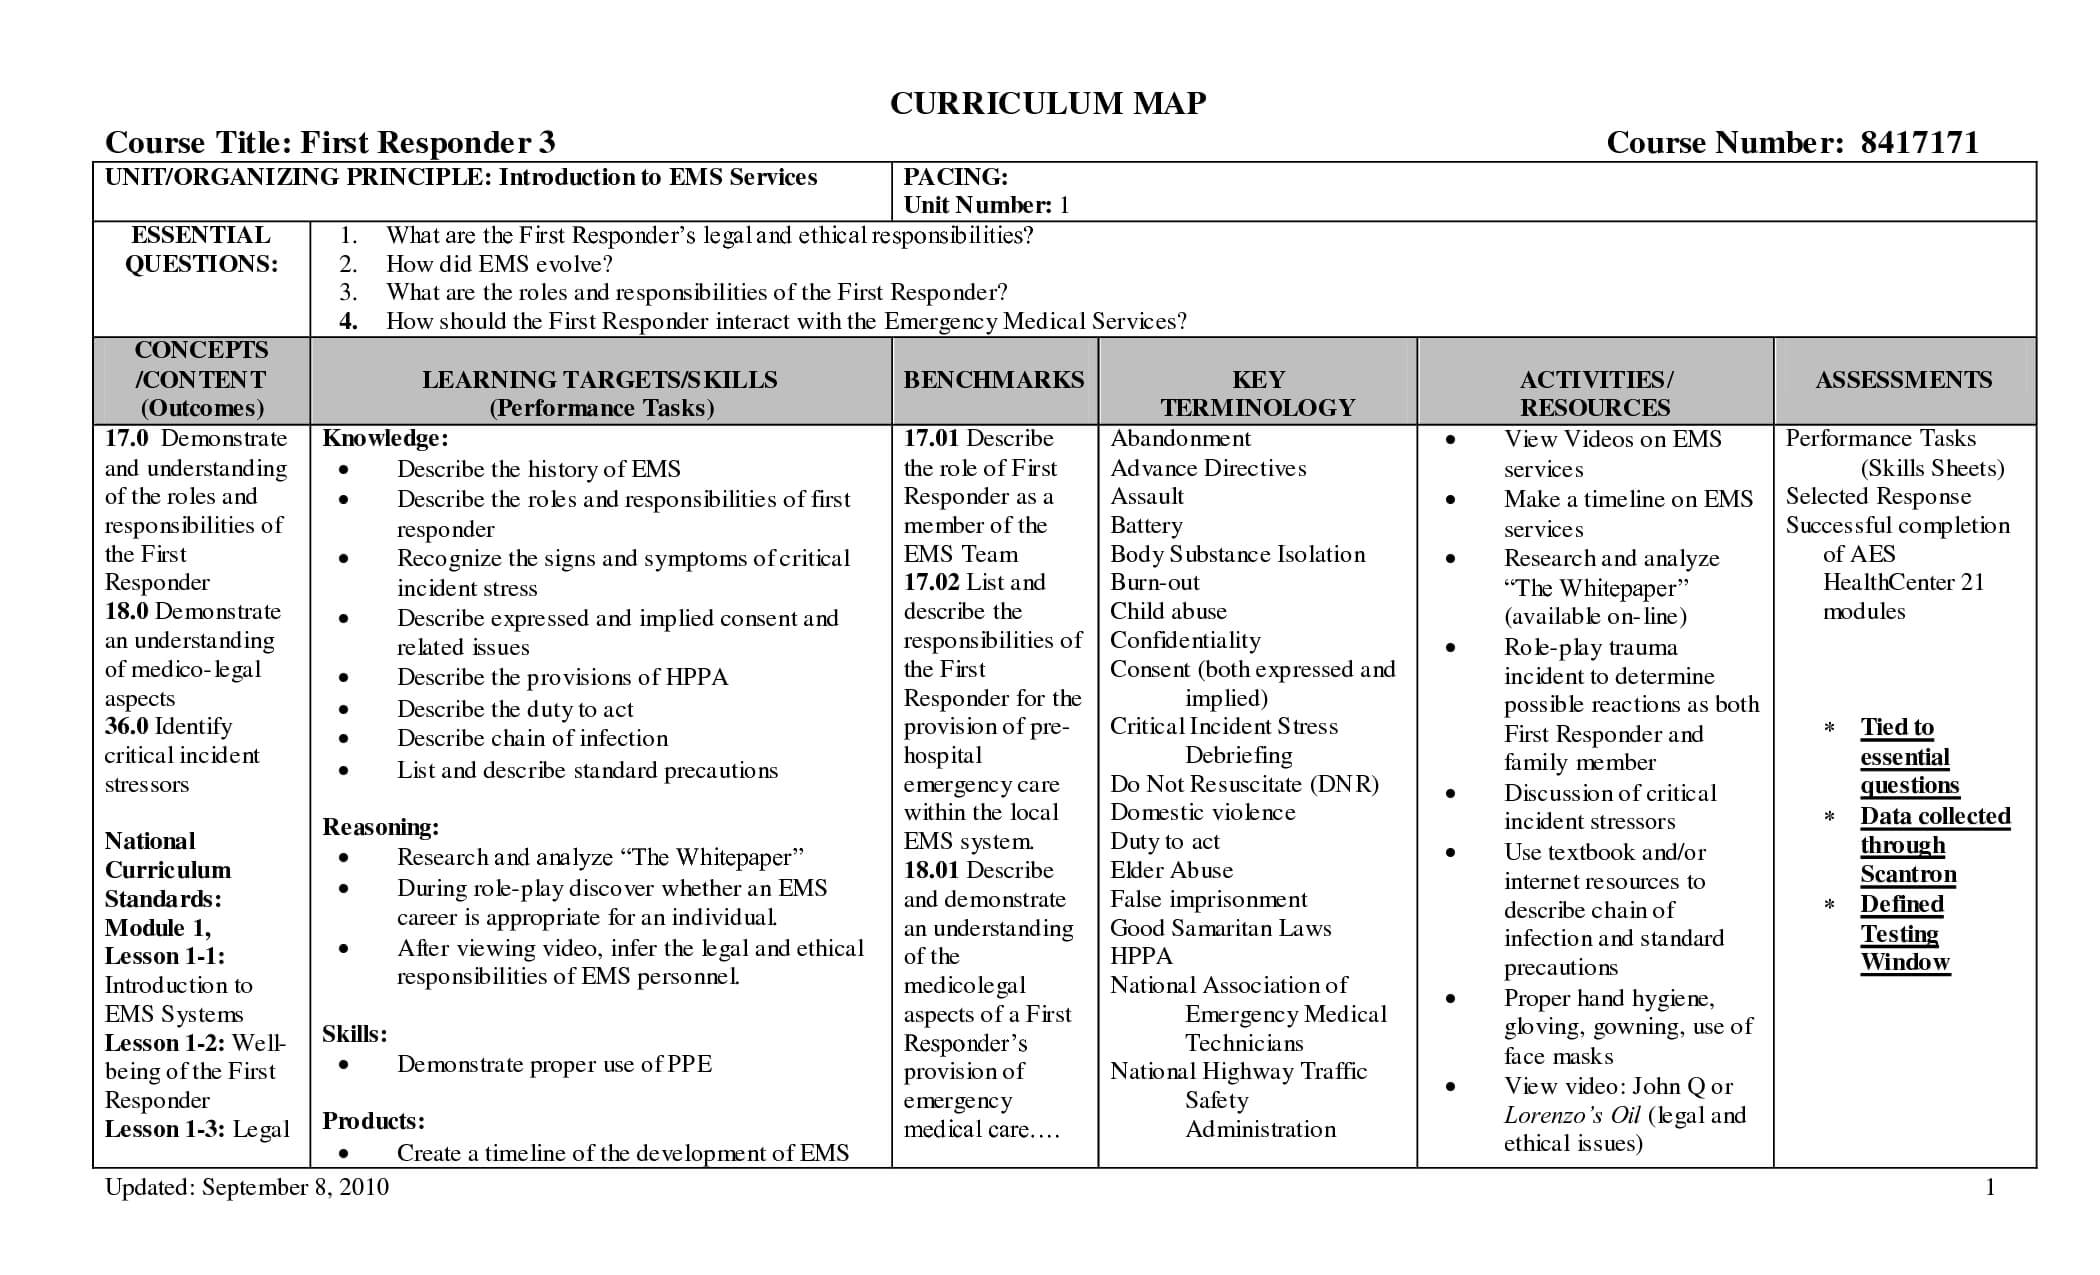 Curriculum Mapping Template Images Sok71B3M | Curriculum pertaining to Blank Curriculum Map Template